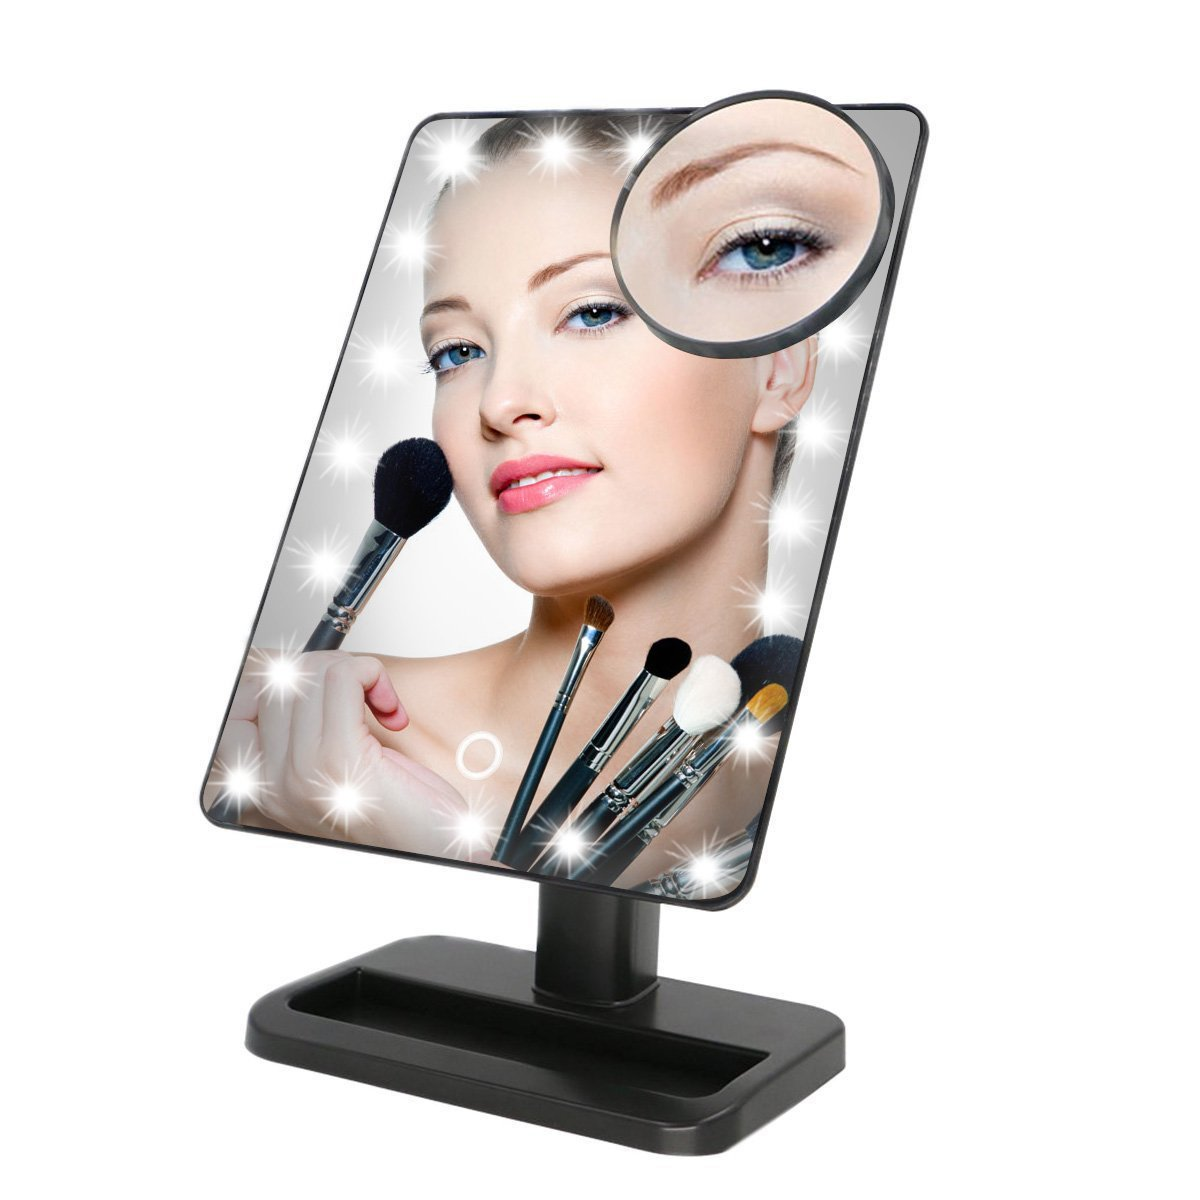 20LED Touch Light Illuminated Cosmetic Desktop Vanity Mirror Beauty Tabletop Mirrors For Lady Women Makeup with 10x Magnifying Mirrors 180 degree rotation (Battery Not Included)